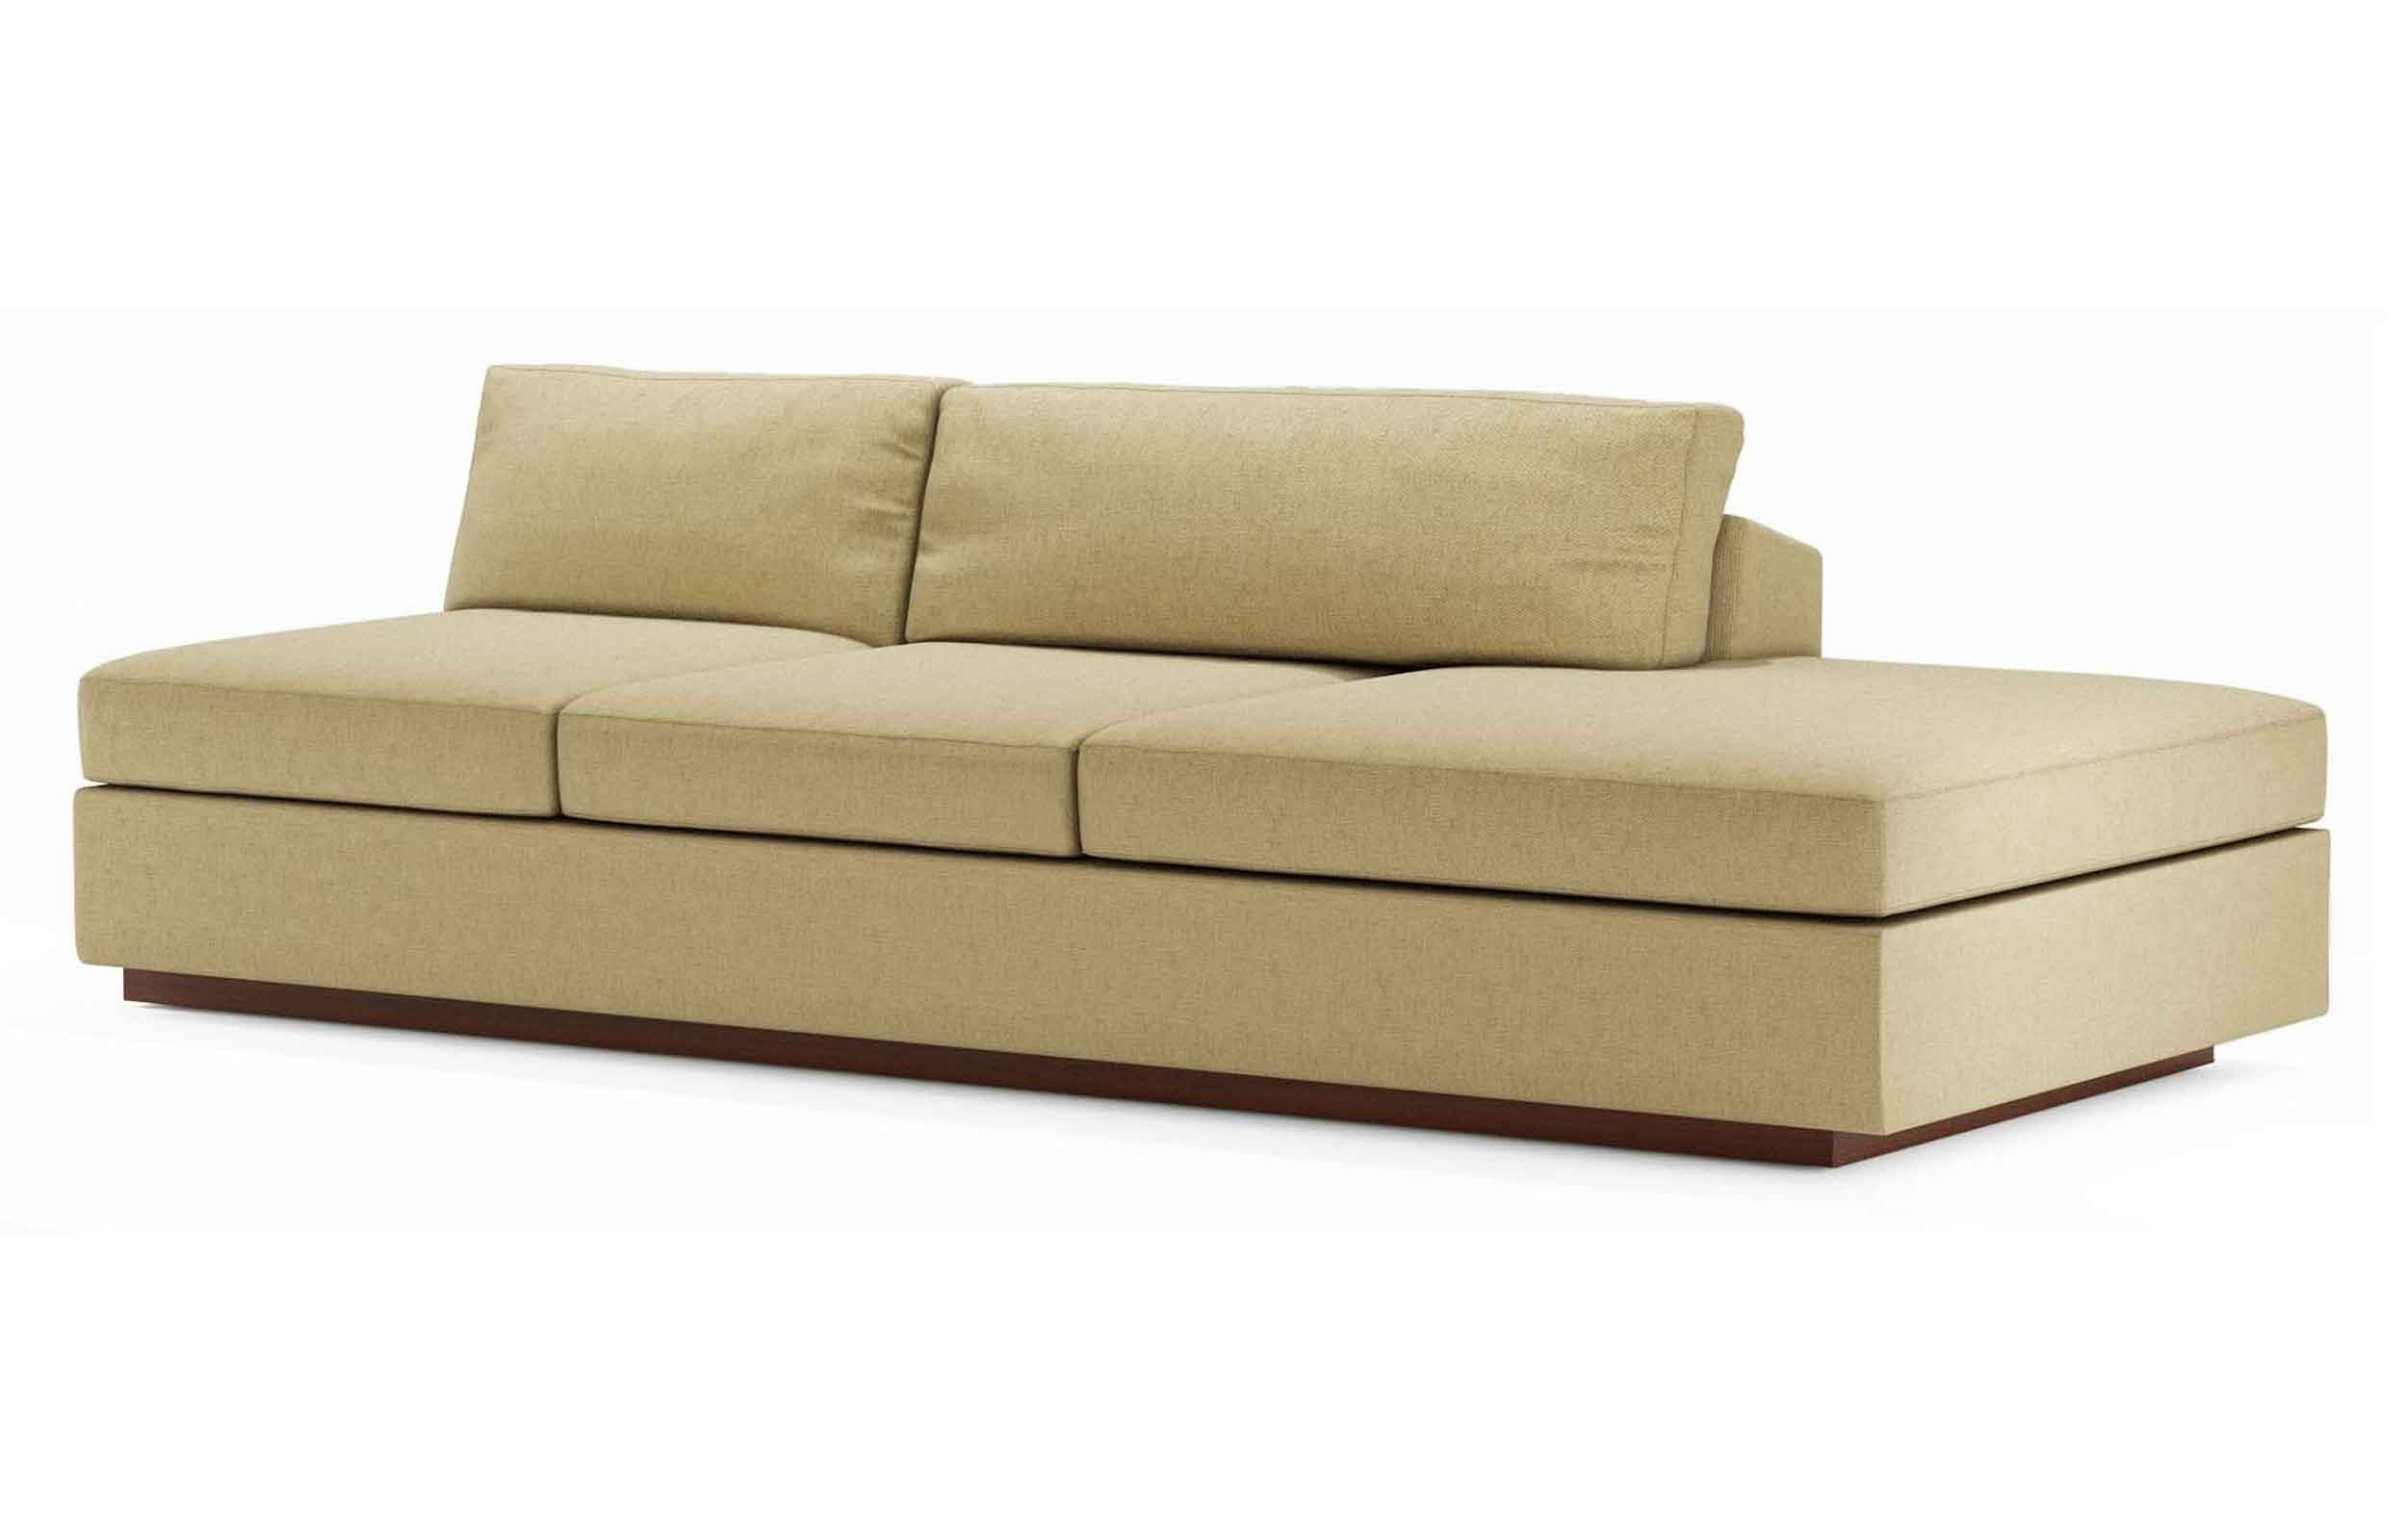 Famous Furniture Home: Armless Sectional Sofa Armless Sofa Spine Armless Pertaining To Small Armless Sofas (View 3 of 15)